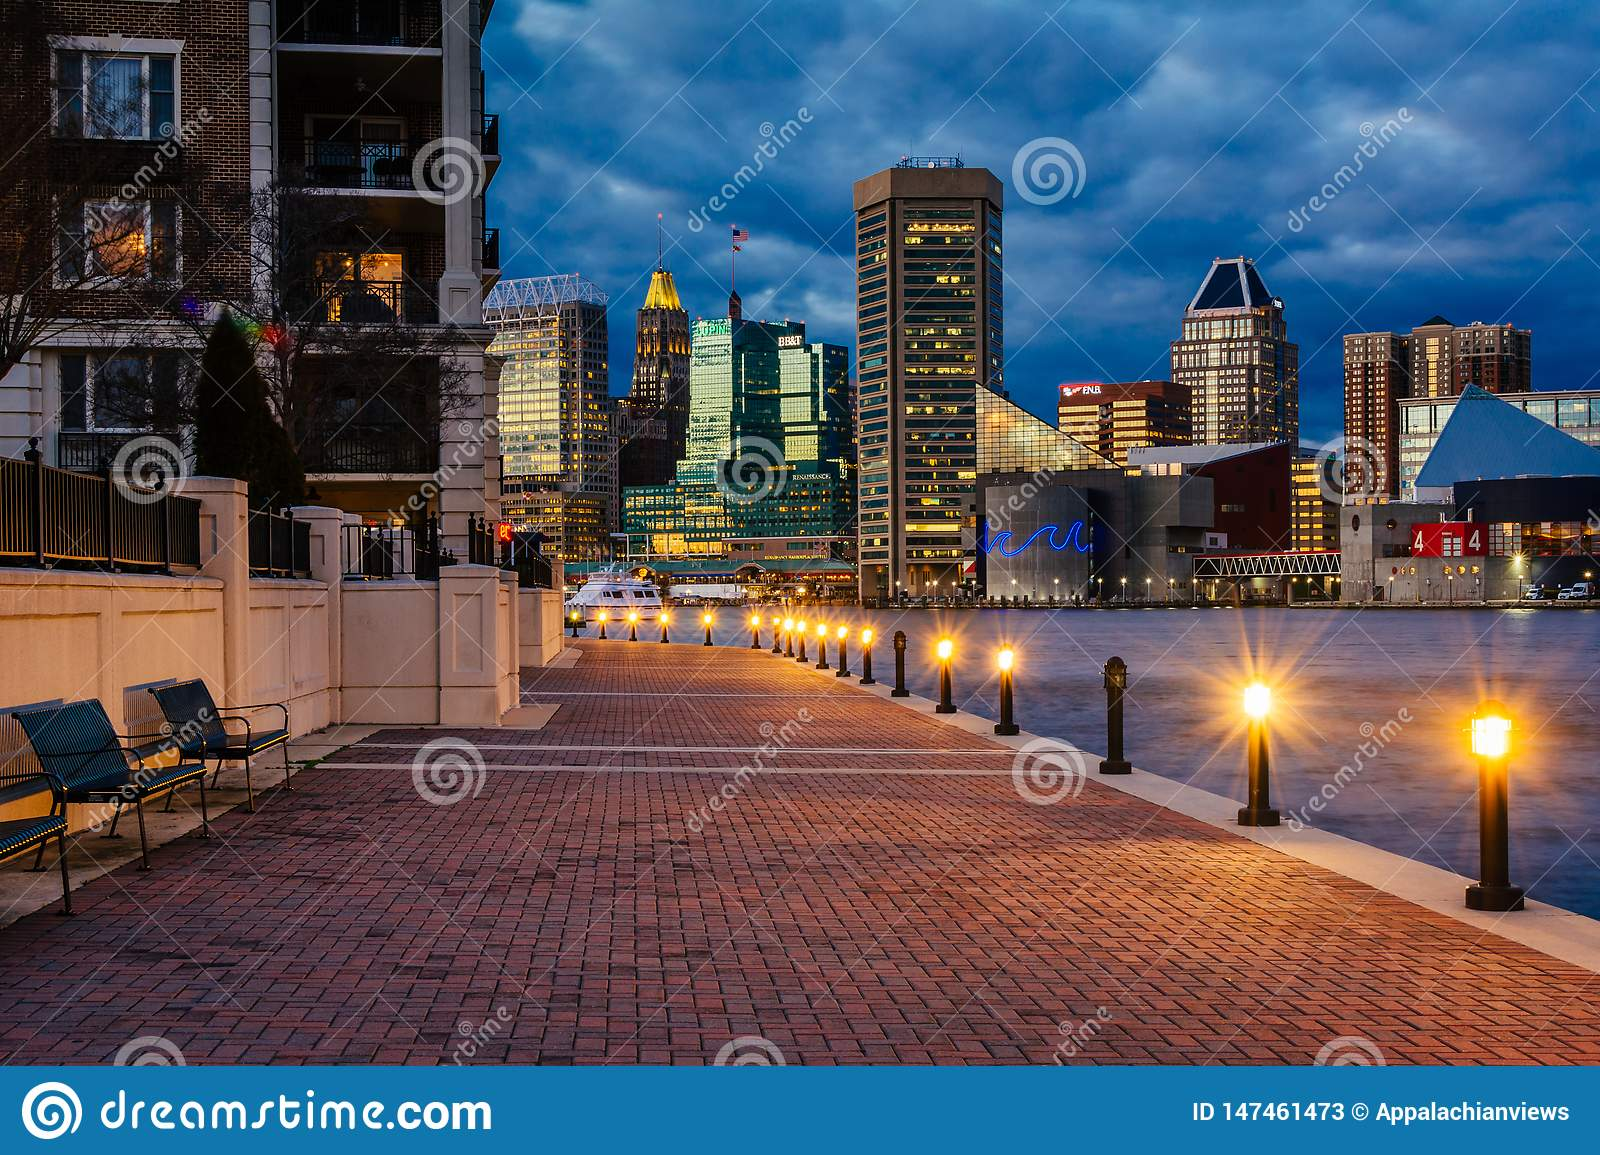 The Waterfront Promenade and Baltimore skyline seen at the Inner Harbor, in Baltimore, Maryland